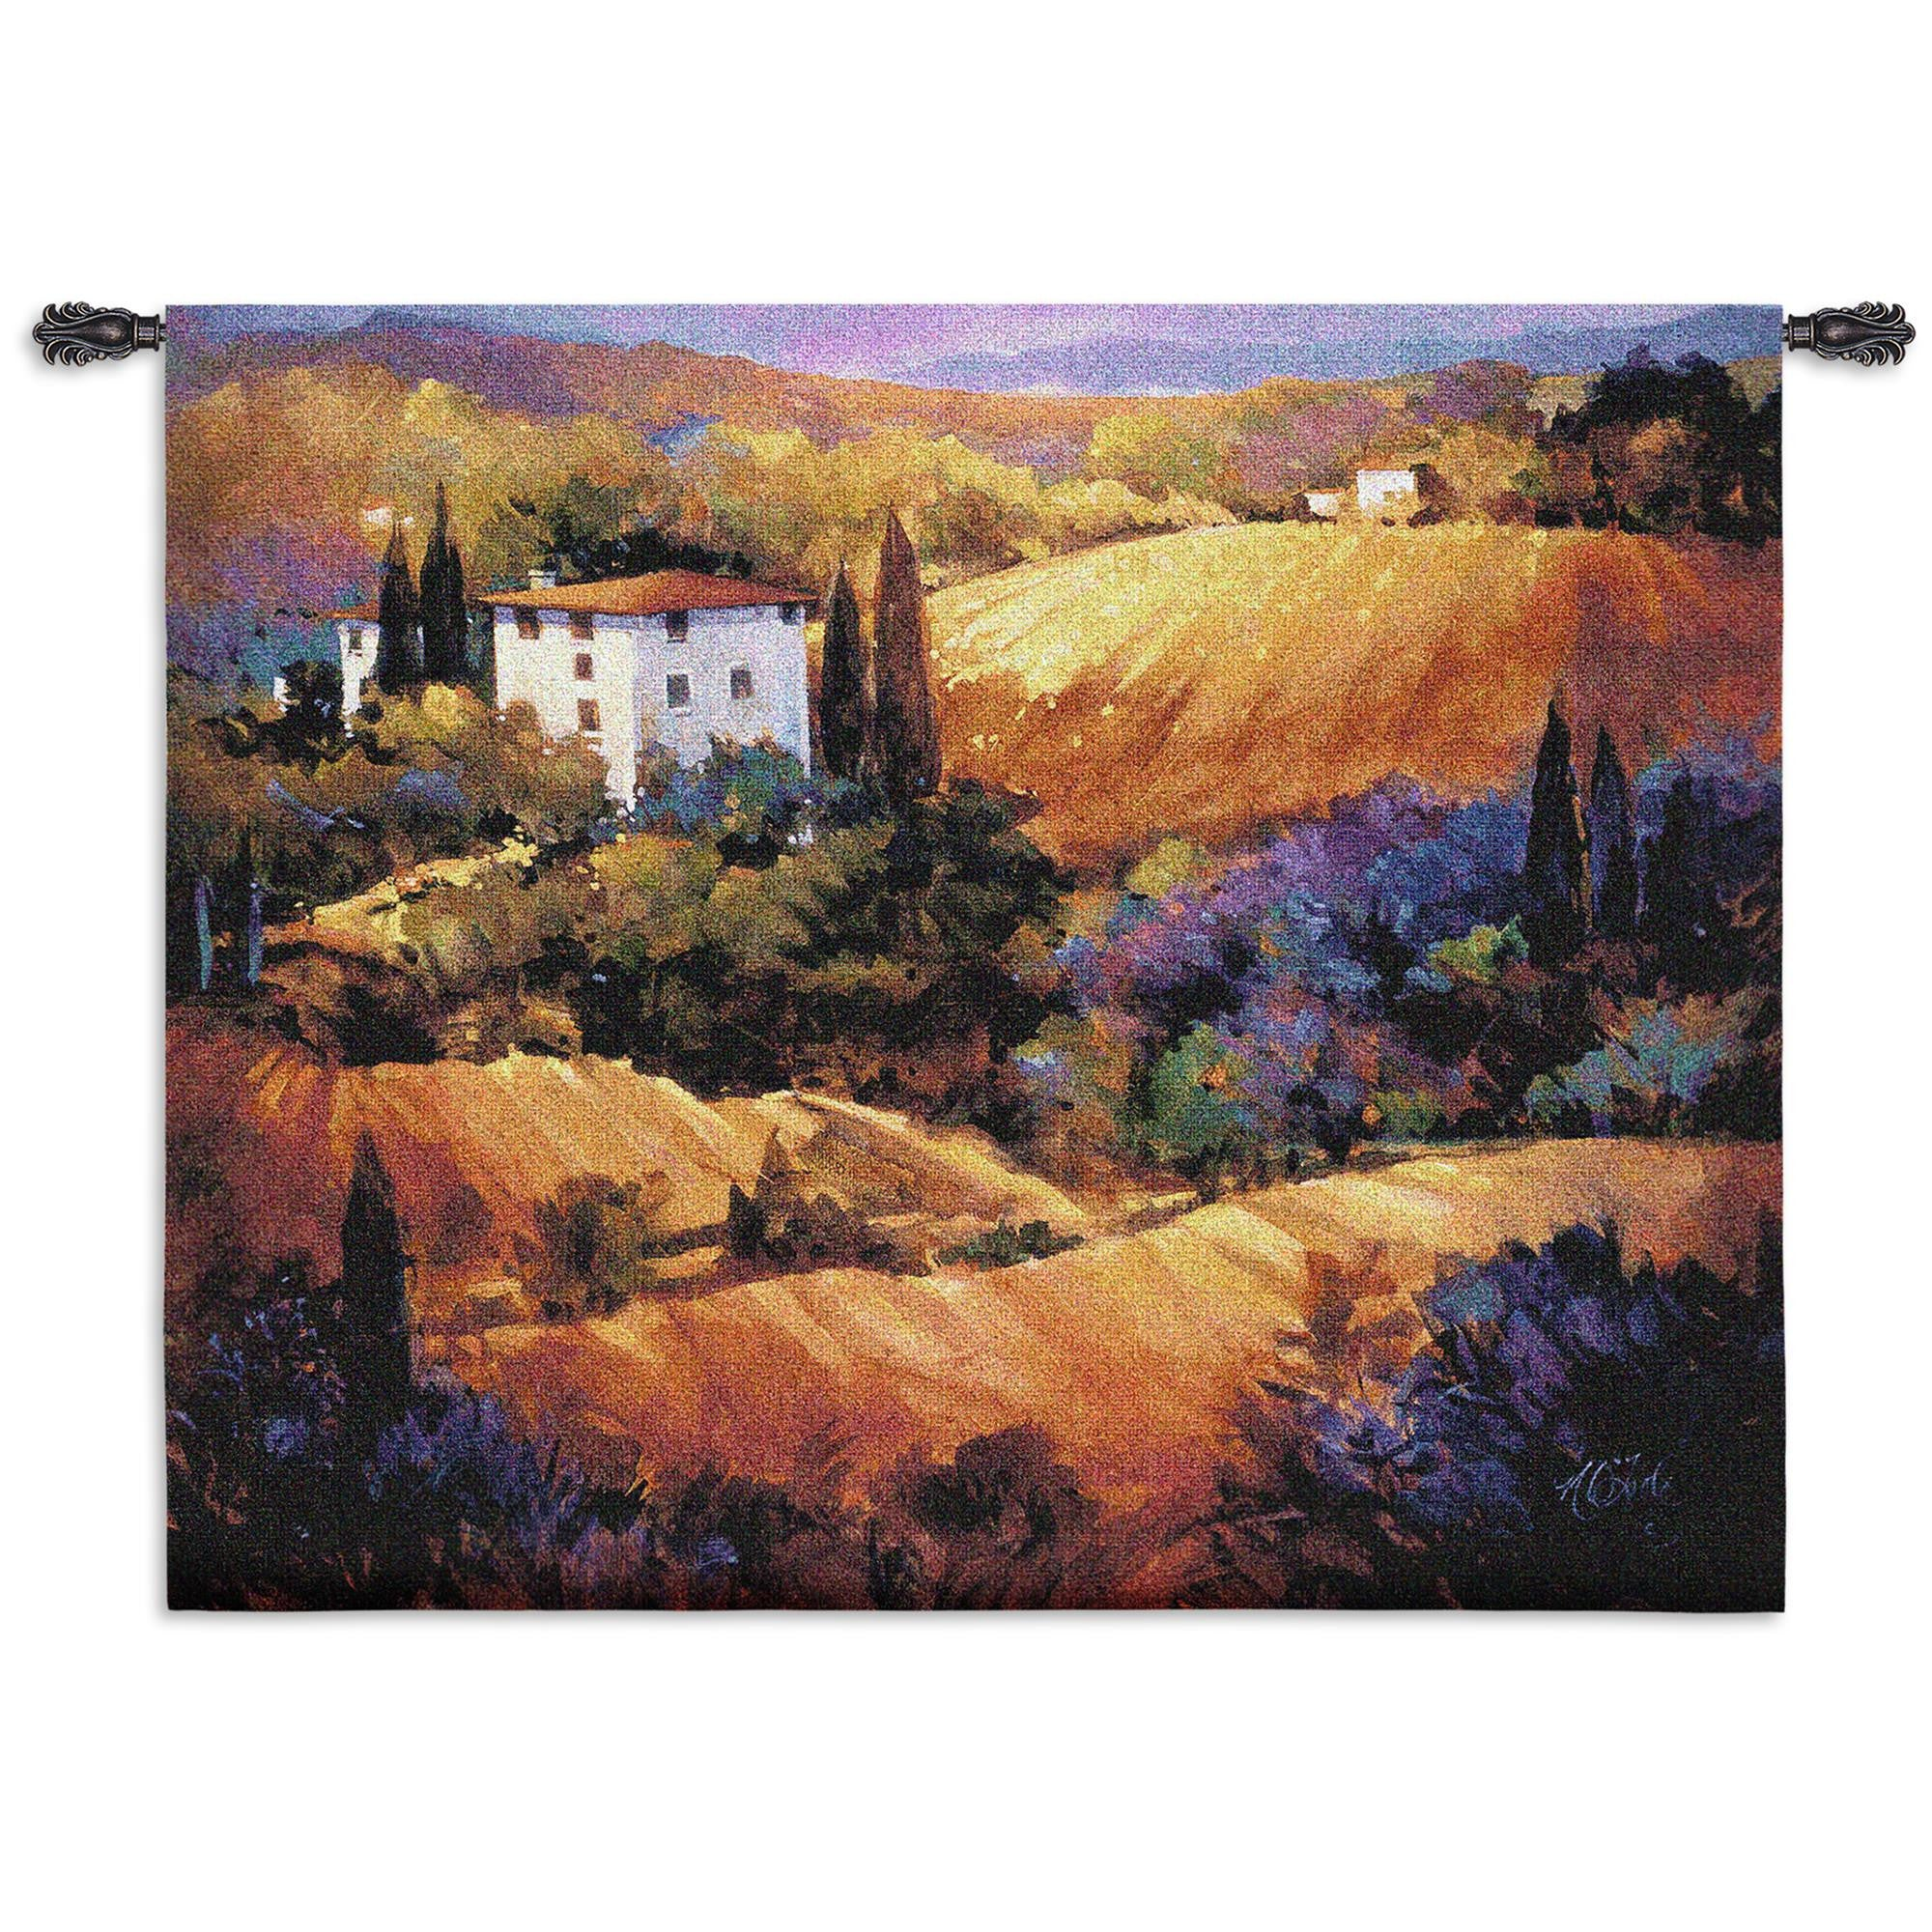 Evening Glow Wall Textile Tapestry